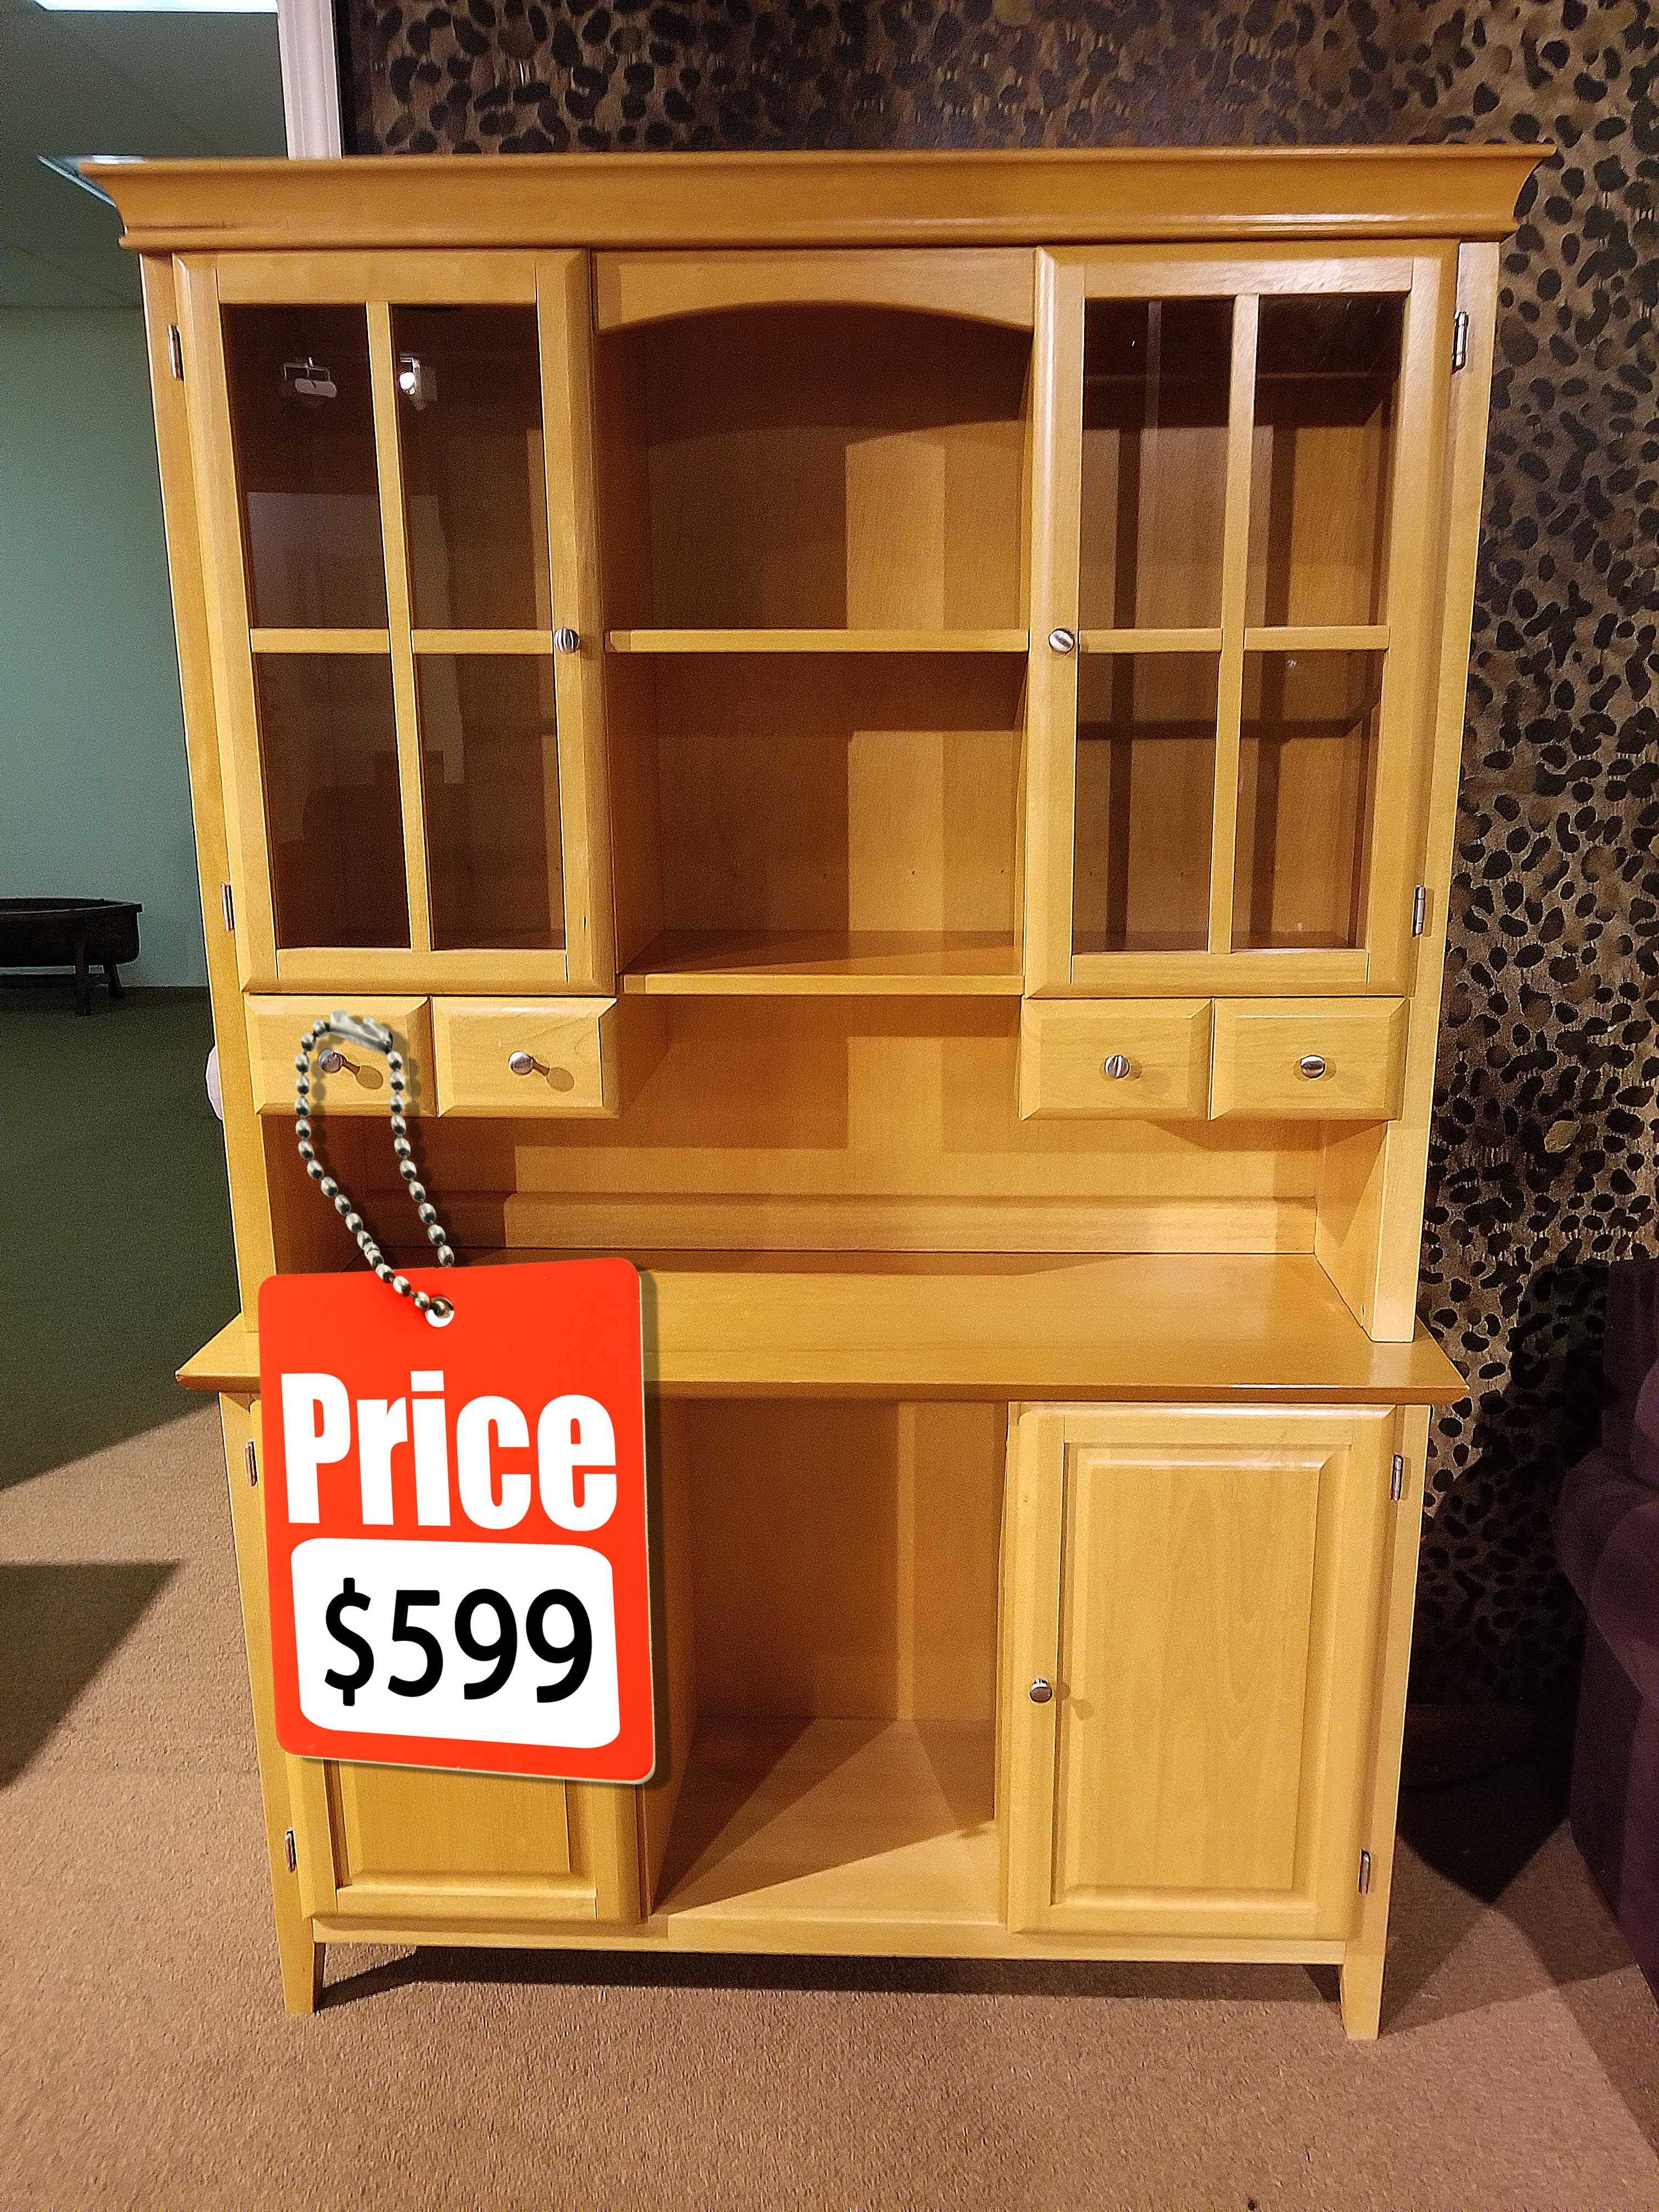 We buy and sell used refurbished furniture at tims furniture repair and refinishing -pine